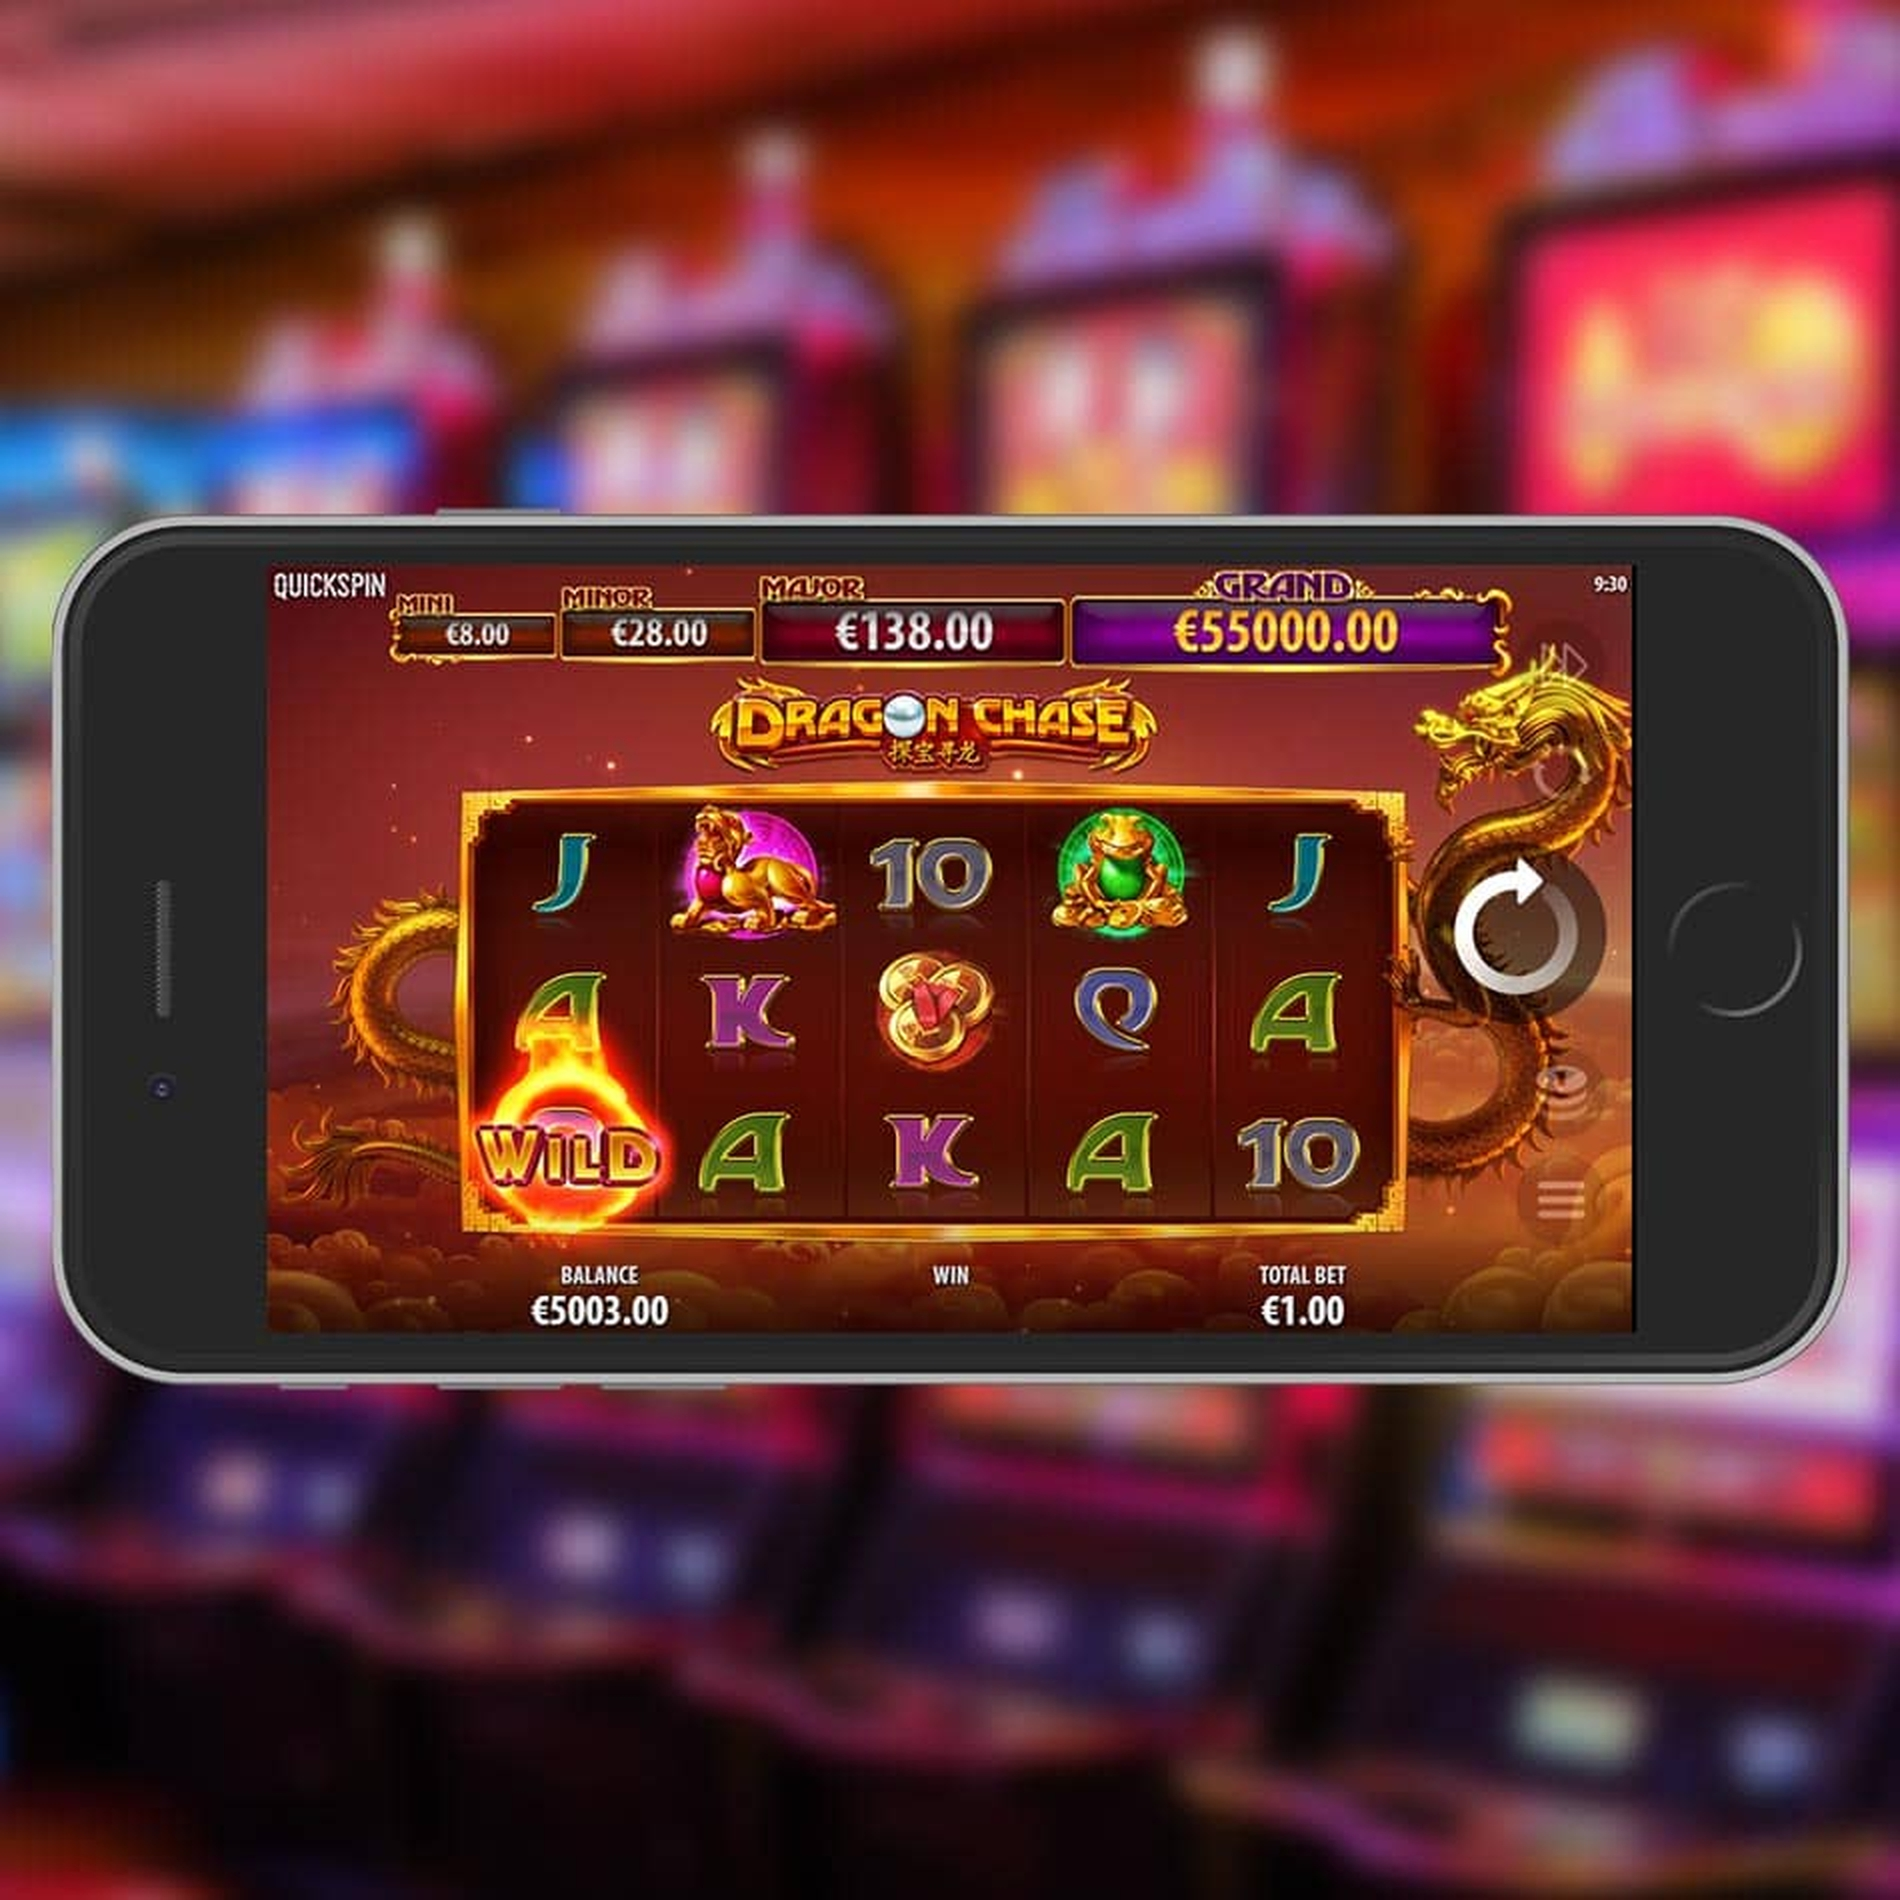 The Dragon Chase Rapid Online Slot Demo Game by Quickspin